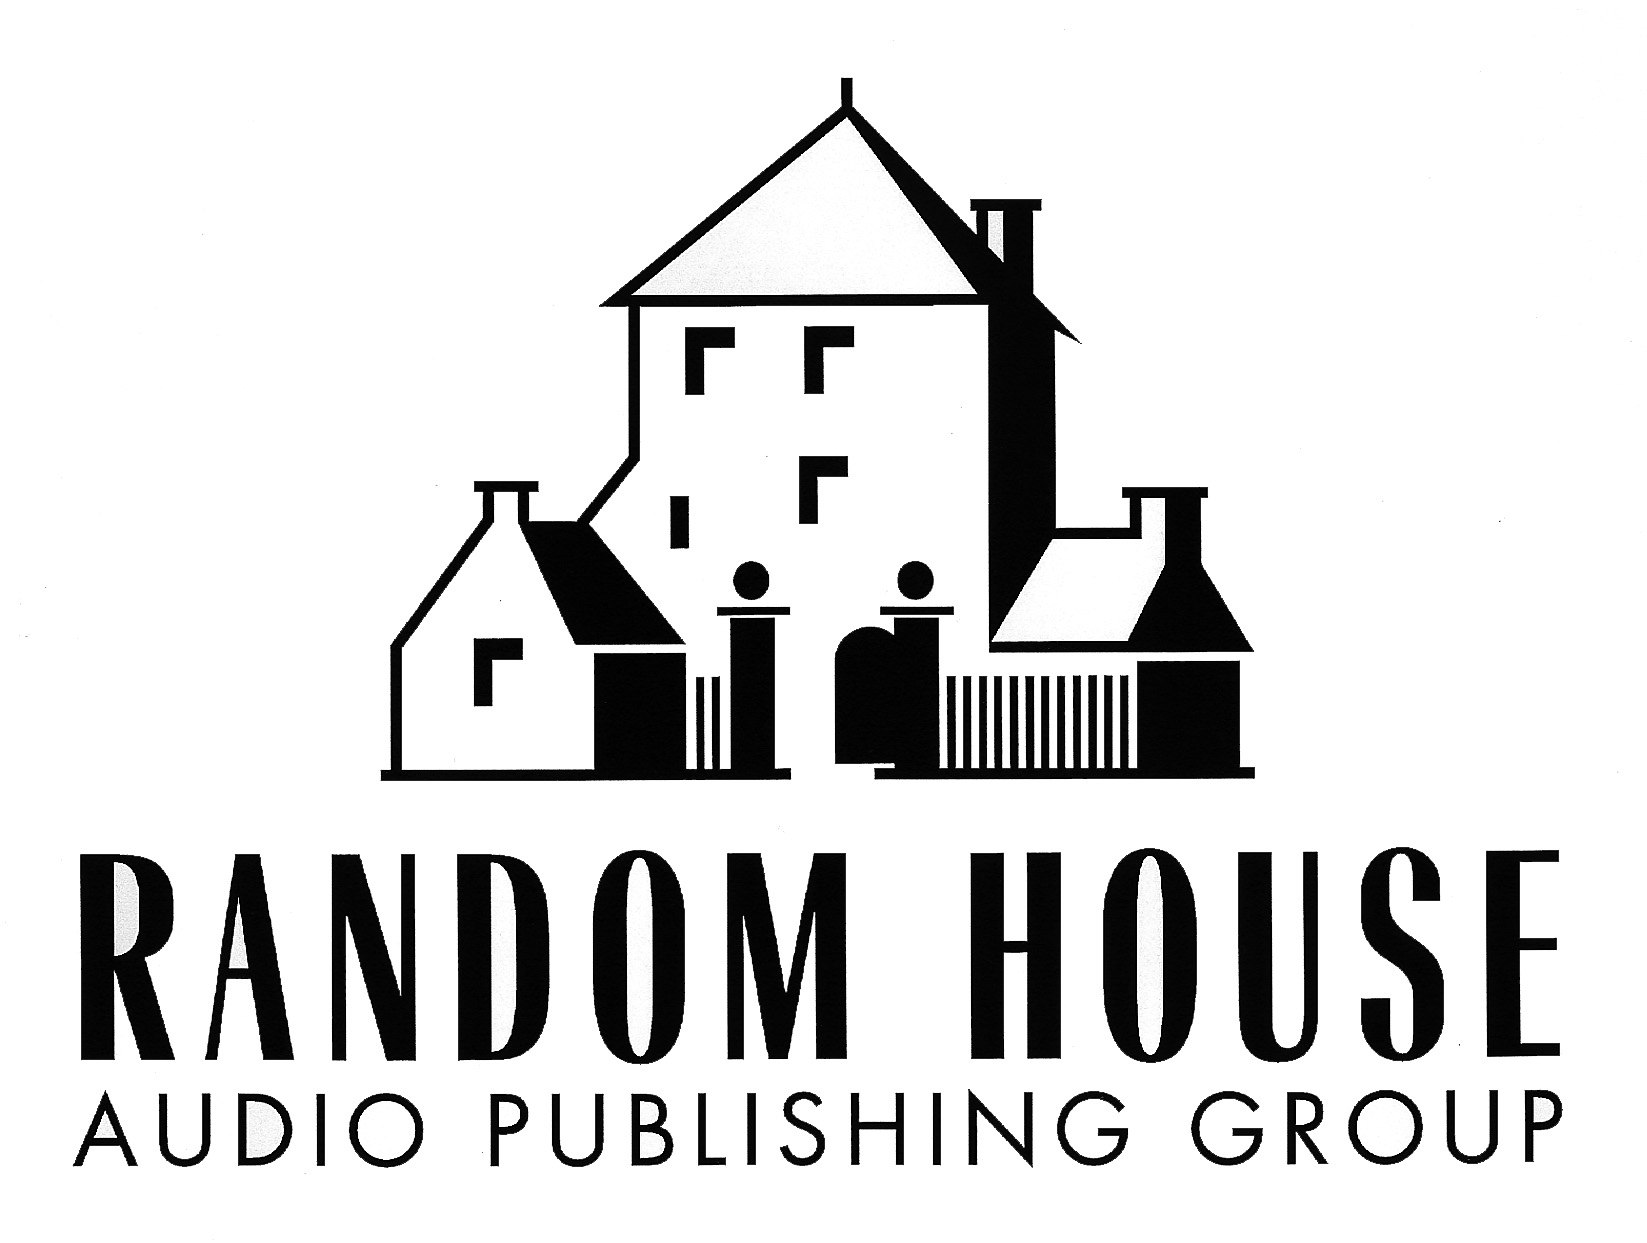 grupo editorial random house: